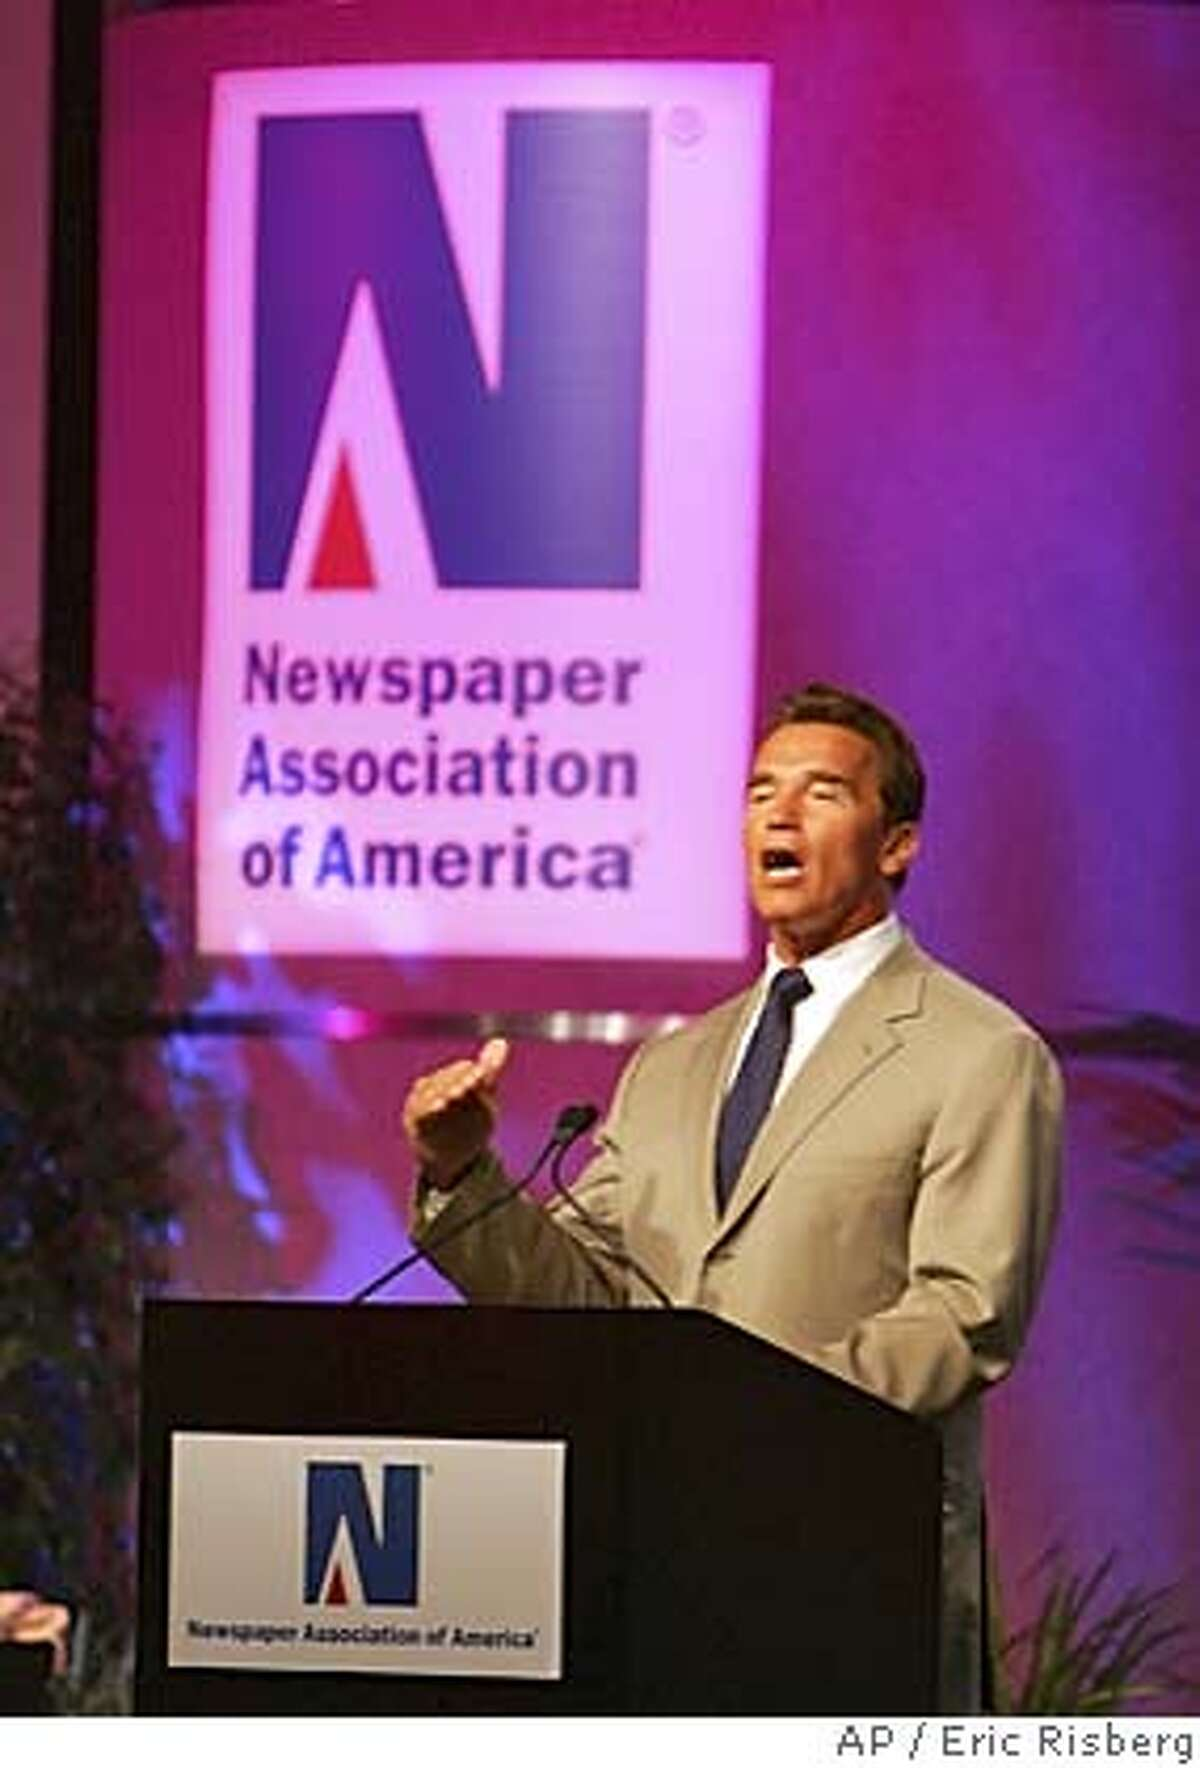 California Gov. Arnold Schwarzenegger addresses a luncheon of the Newspaper Association of America during their convention in San Francisco, Tuesday April 19, 2005.(AP Photo/Eric Risberg)